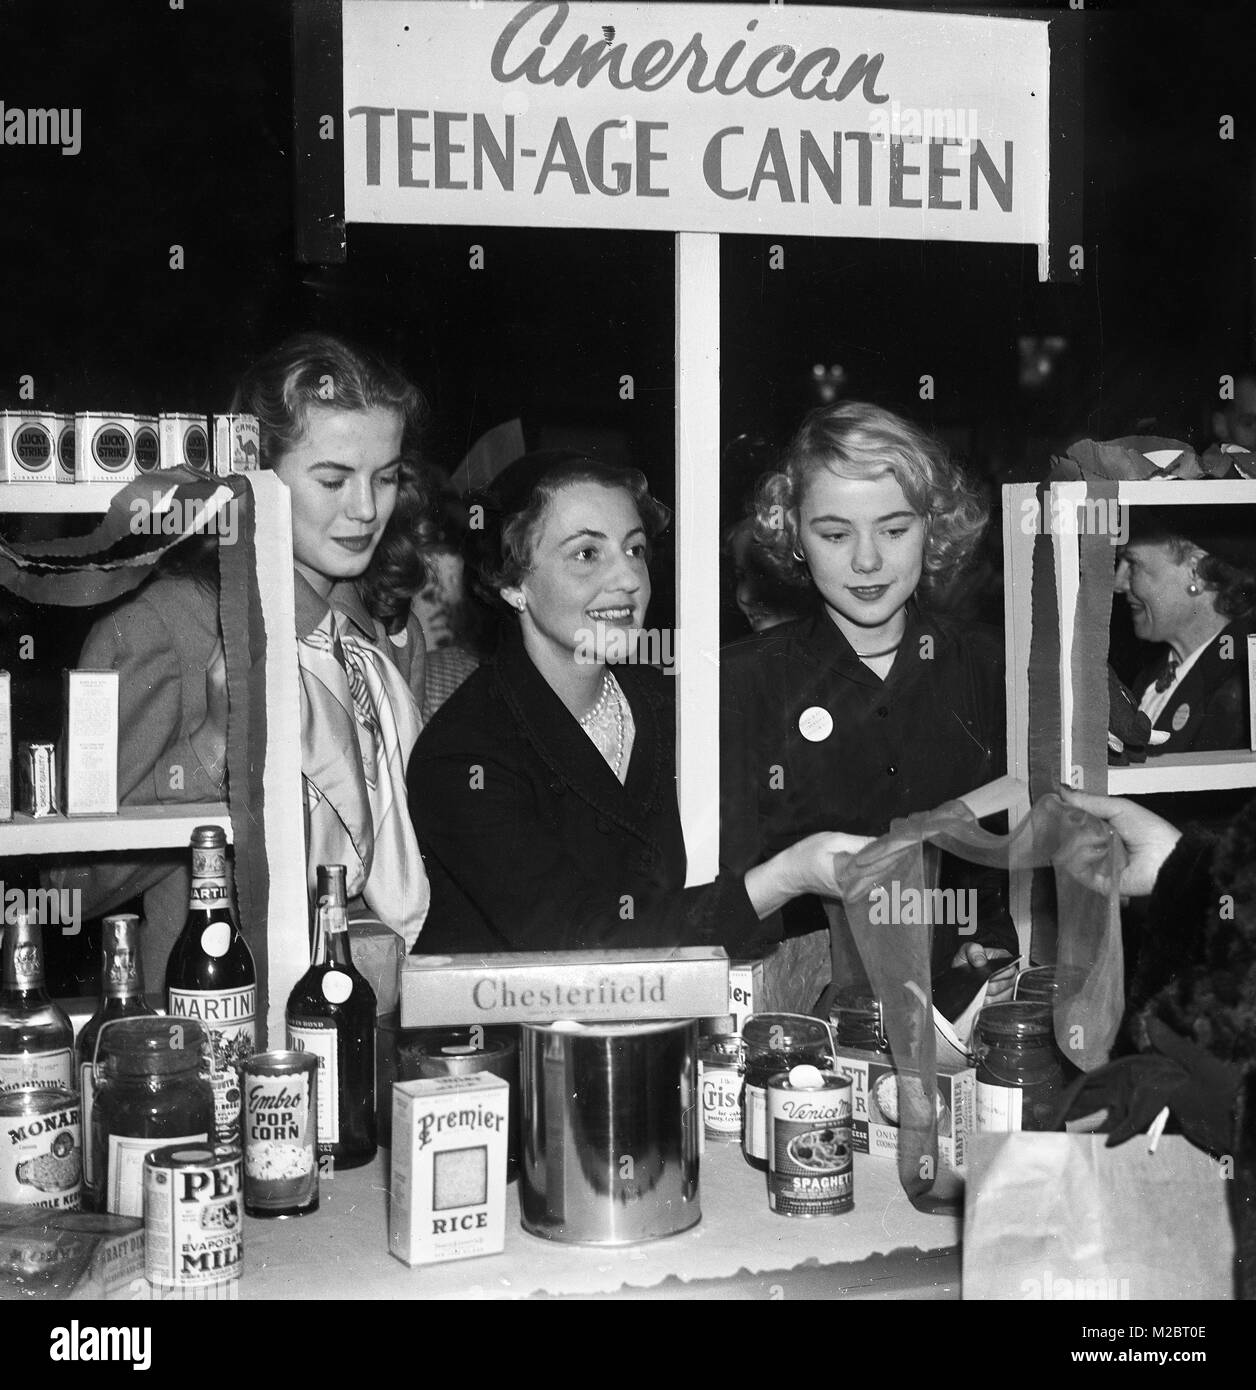 American goods including nylon stickings for sale in London after world war two rationing ends in 1954 - Stock Image